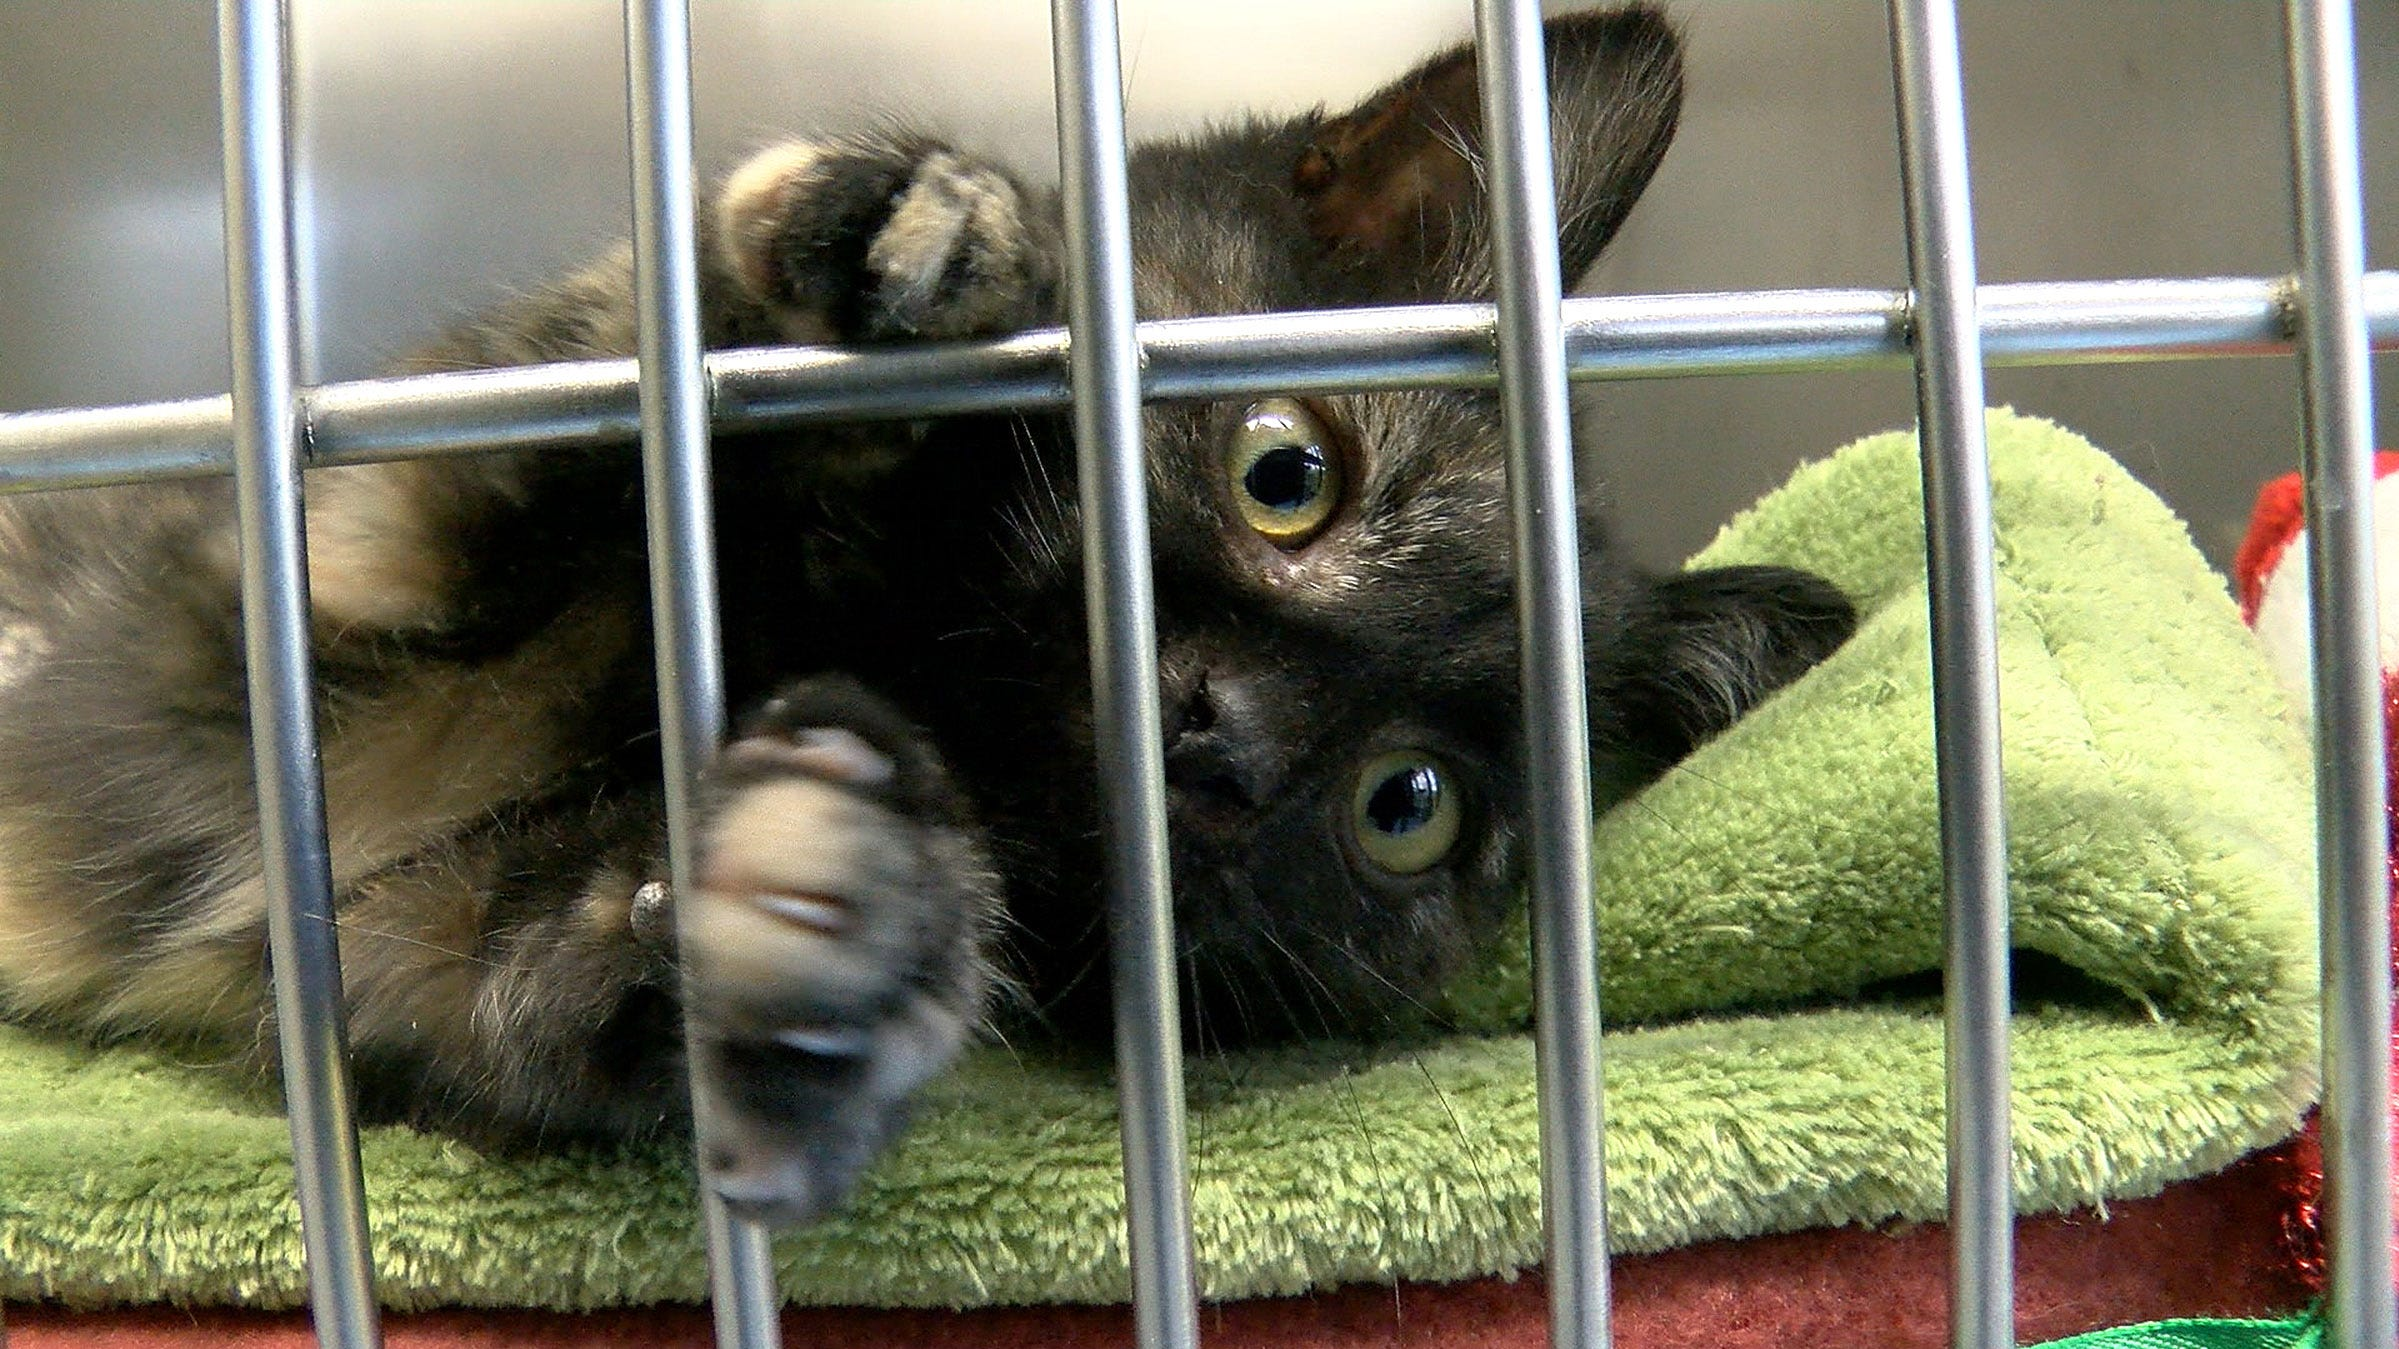 Millennials are adopting more rescue pets. That's good news for NJ shelters